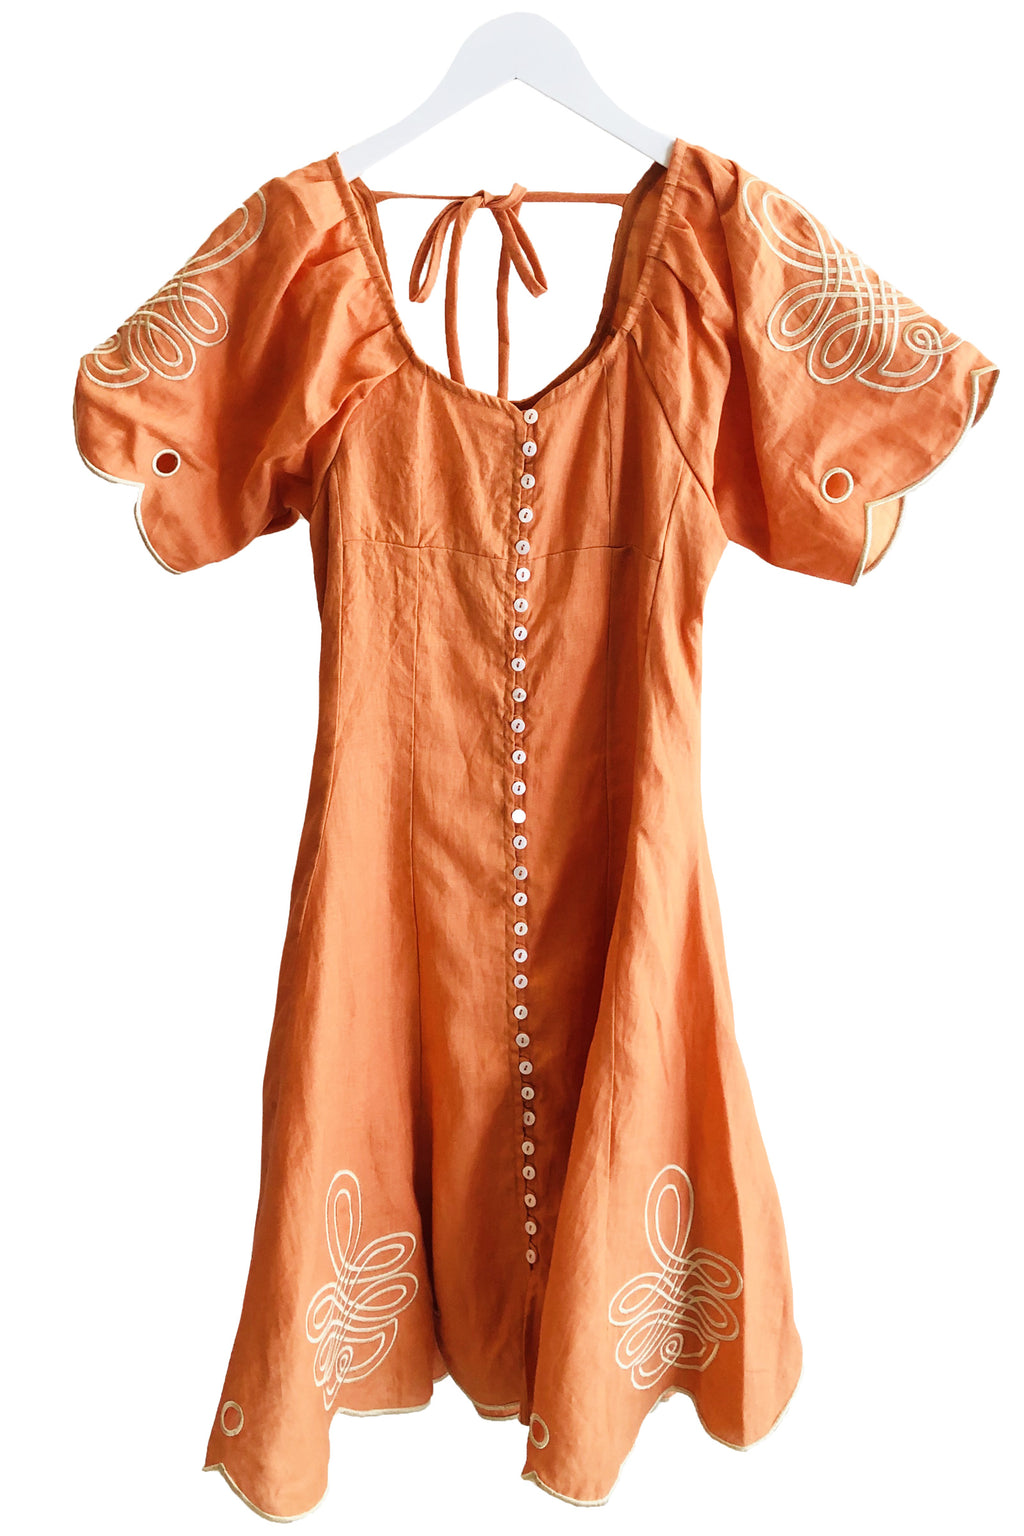 Innika Choo Linen Button Down Tea Dress in Cinnamon